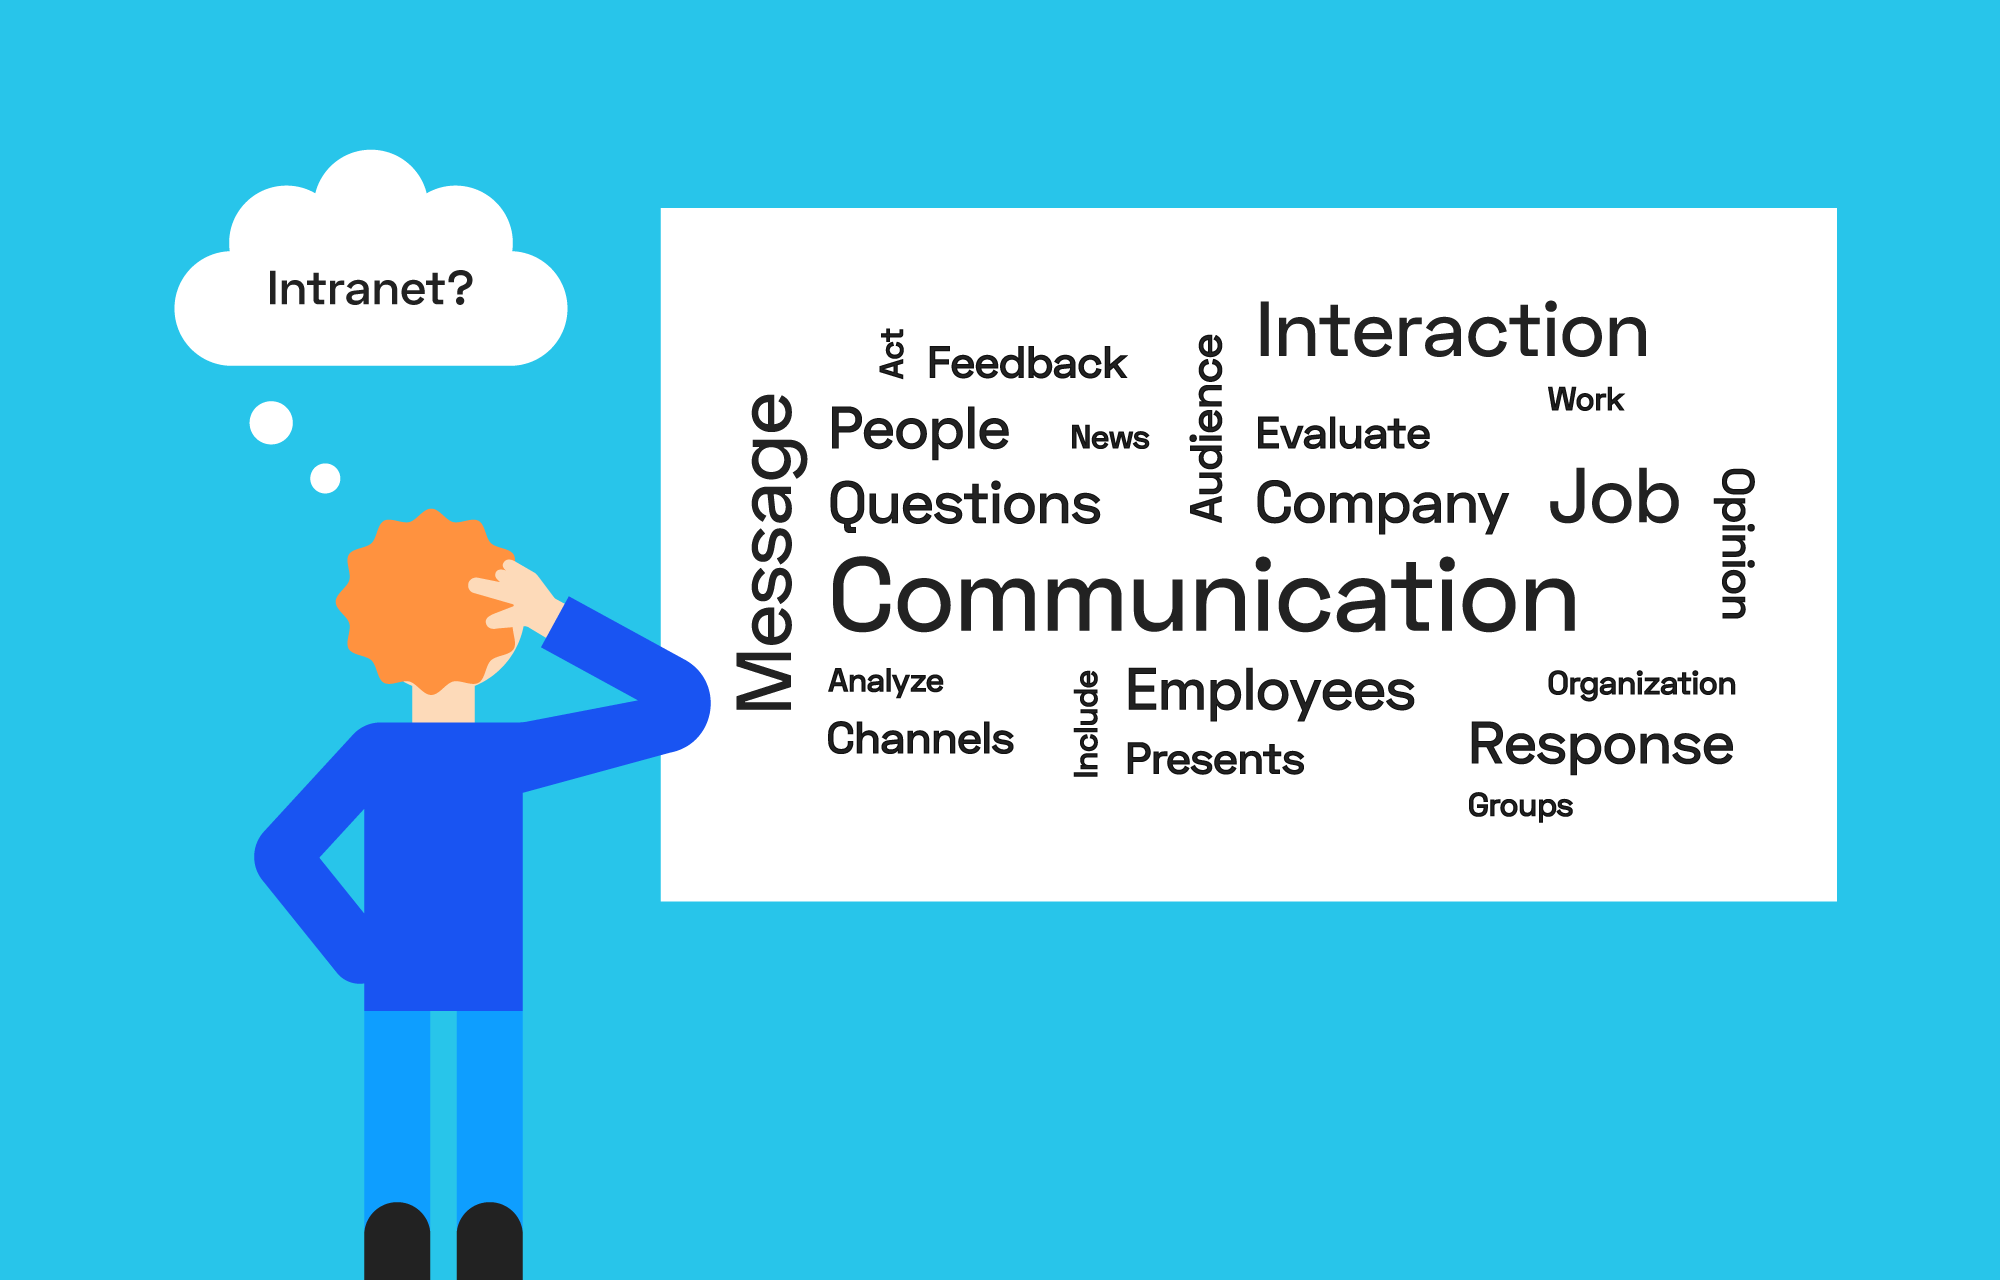 Could an intranet improve internal communication in your company?